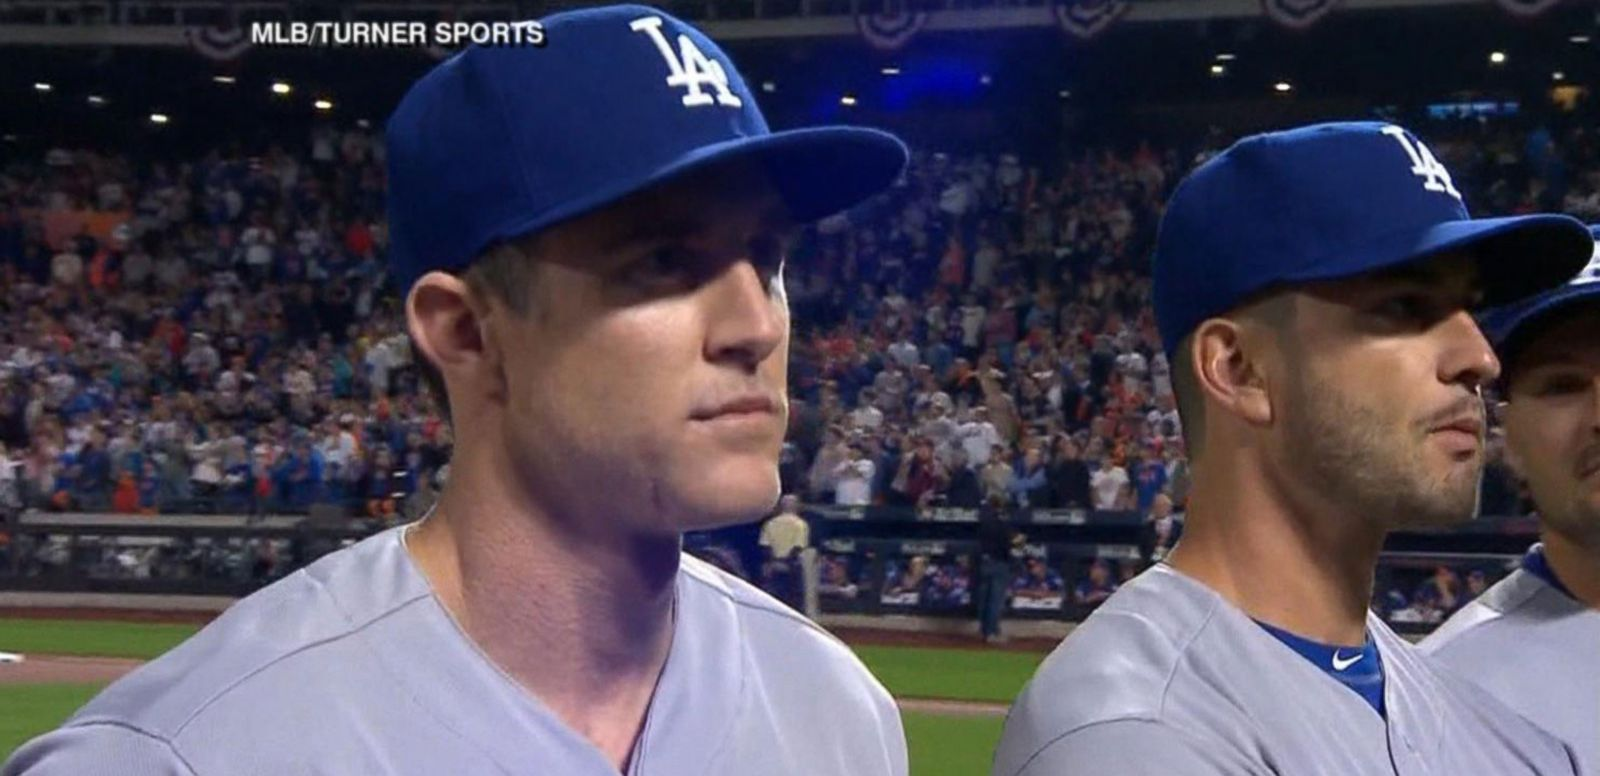 VIDEO: NY Mets Take Game 3 Over Dodgers Amid Chase Utley Slide Controversy